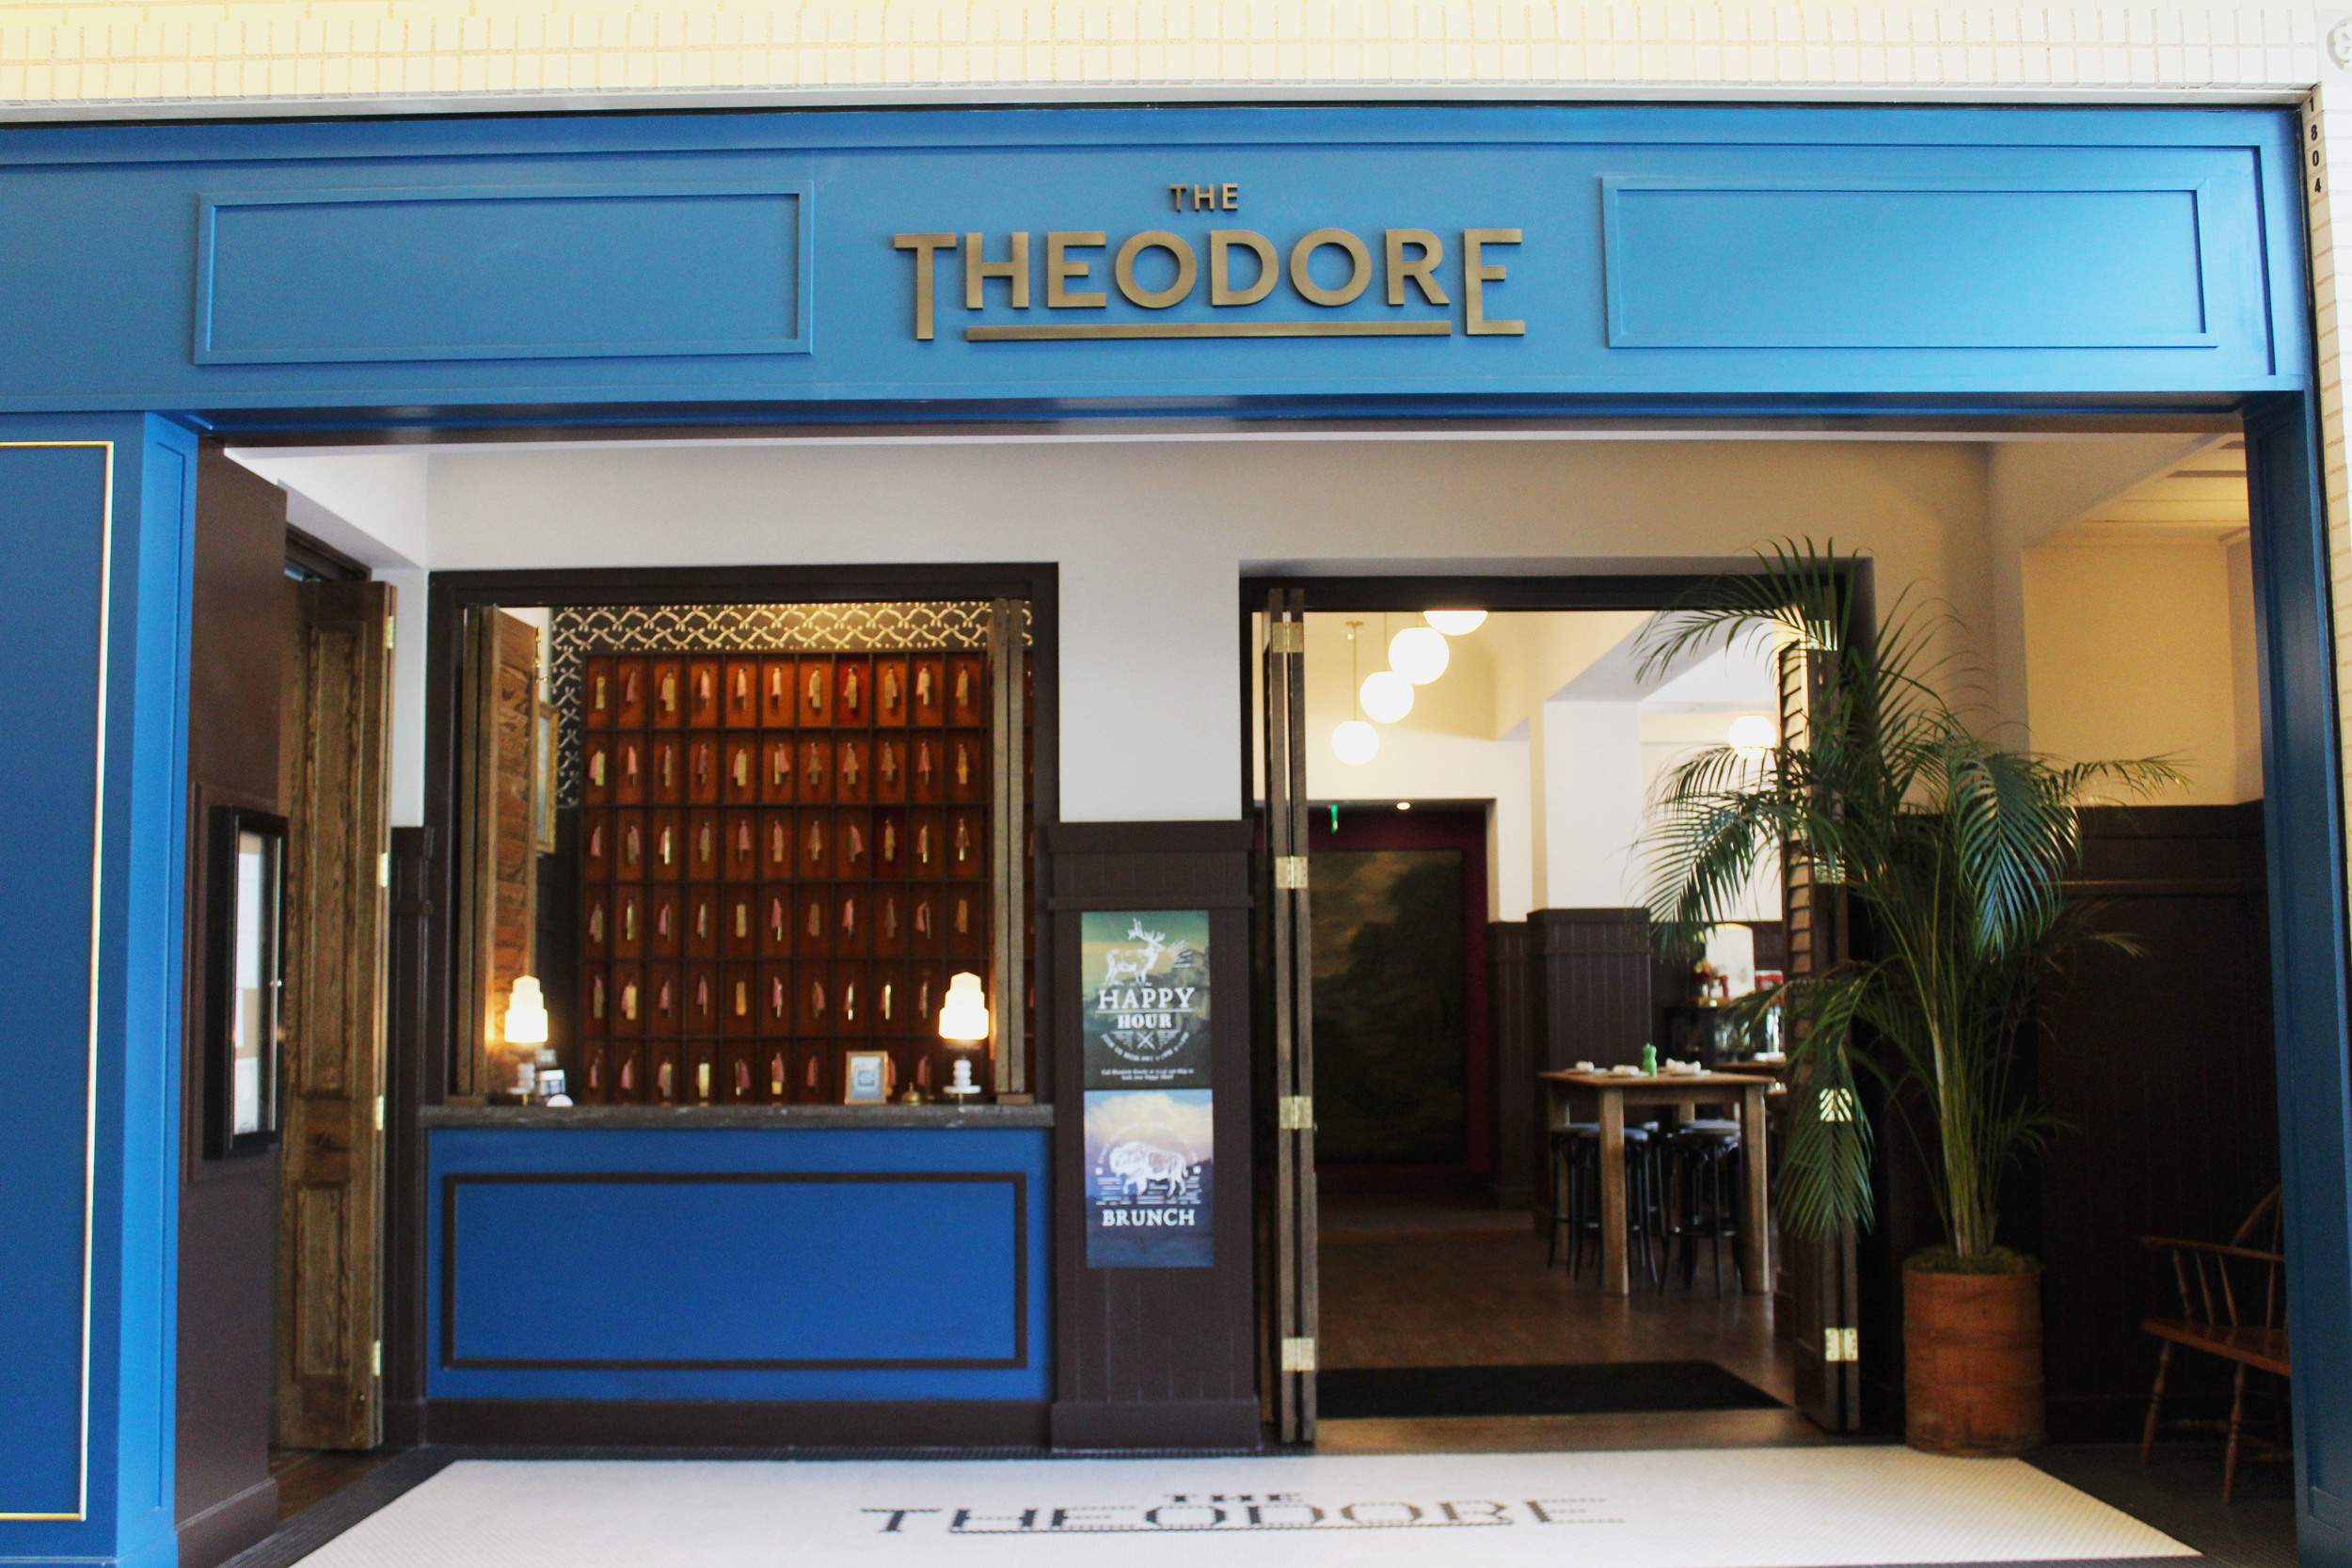 The Theodore Dallas lobby